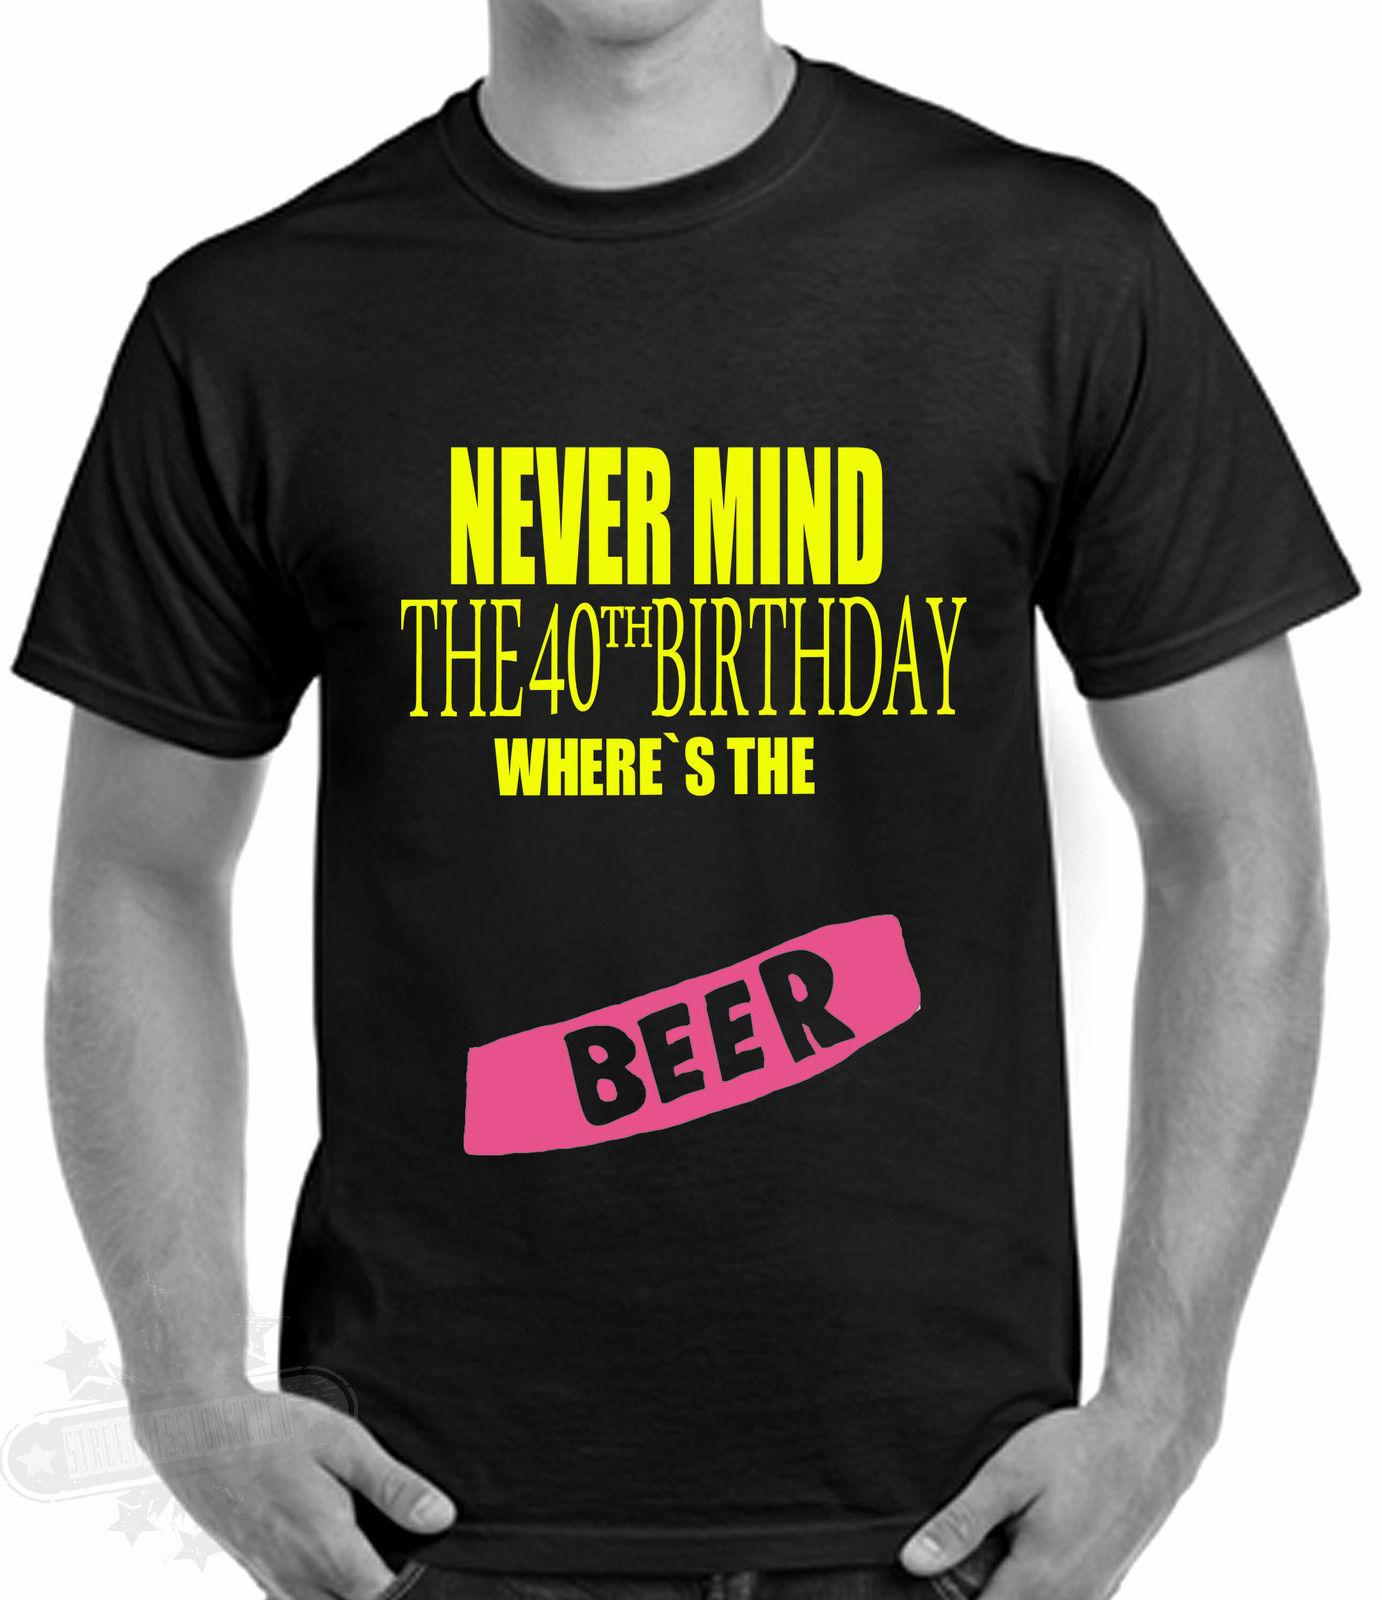 40th Birthday Celebration Humour T Shirt Old Punk Beer GIFT CELEBRATION Funny Unisex Casual Gift One Tee A Day Random Graphic Tees From Fashionistas